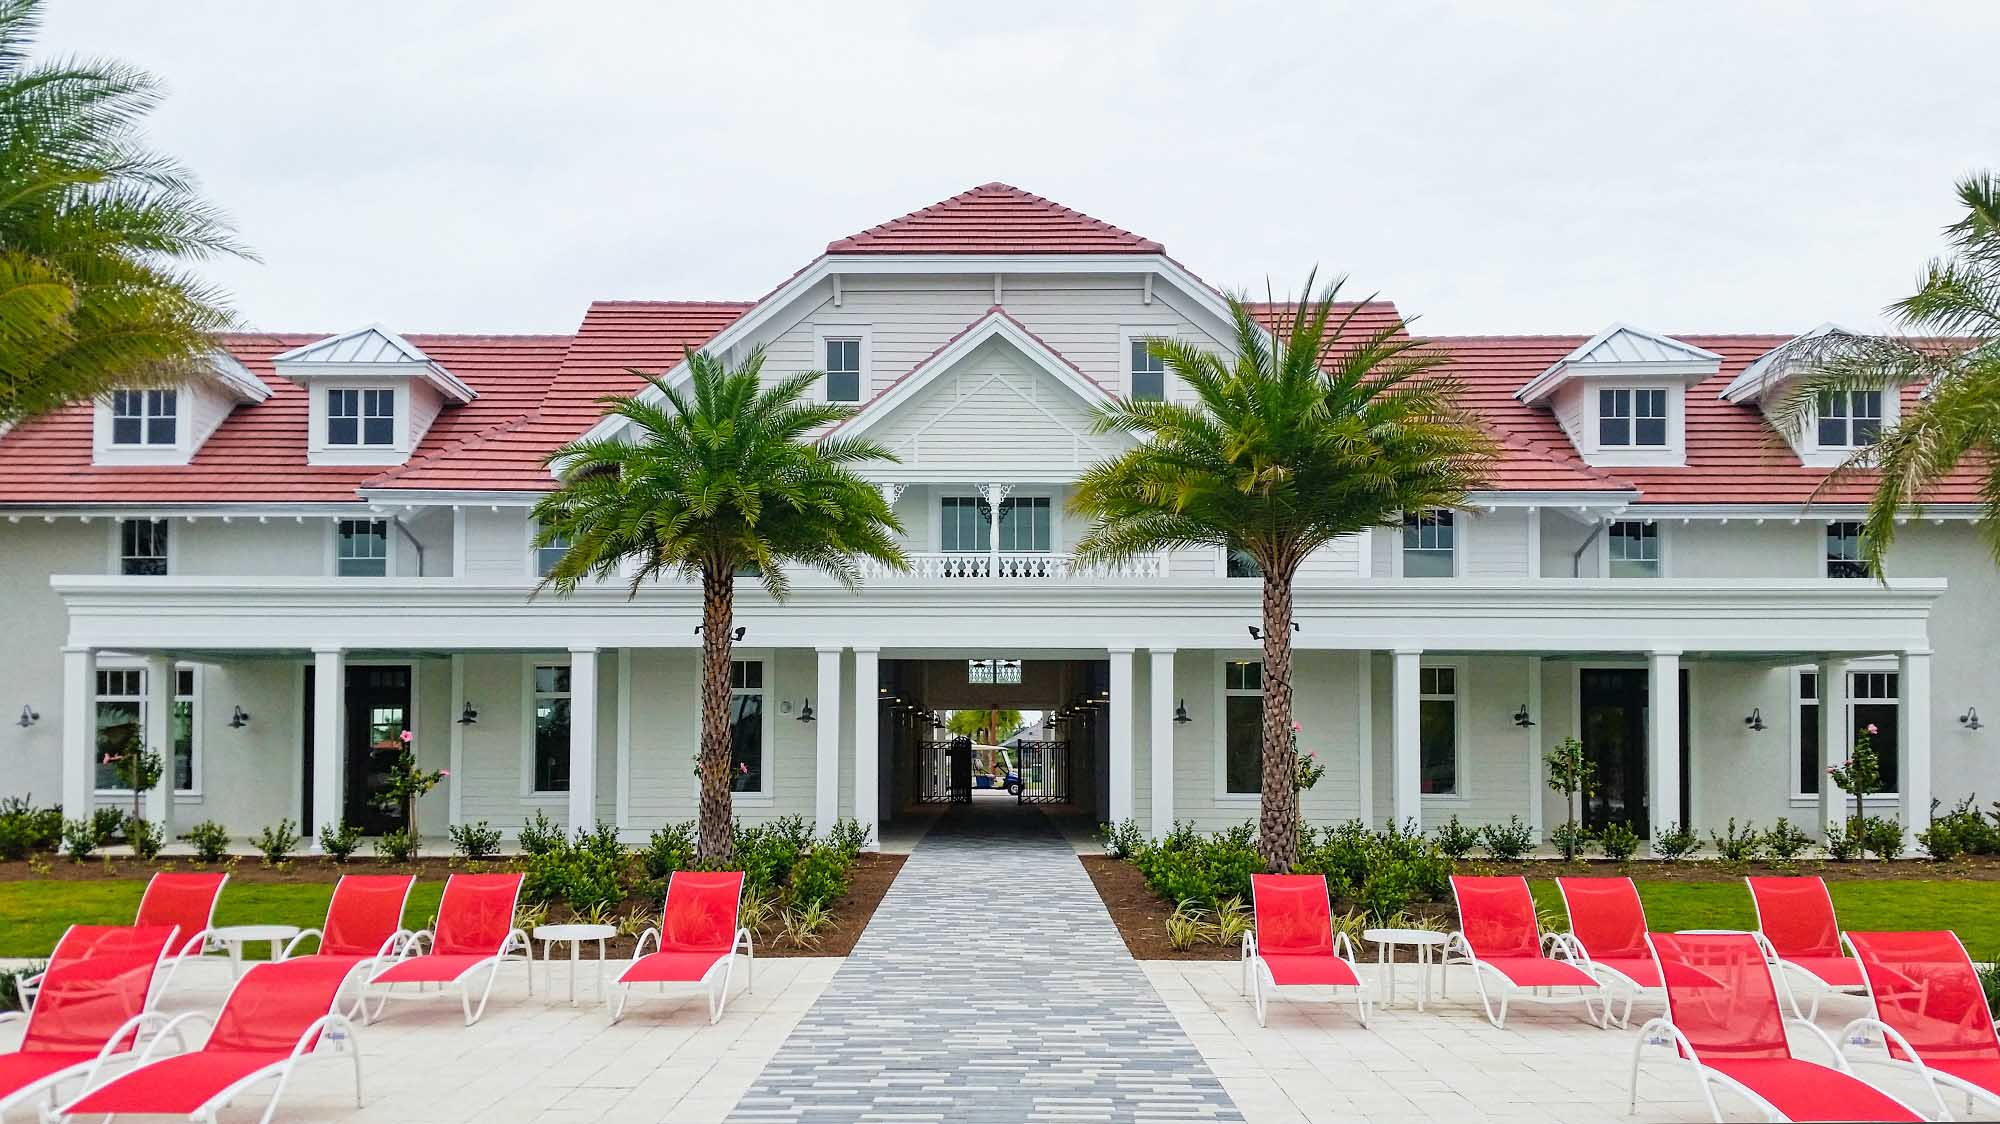 New Community of Isles of Collier Preserve